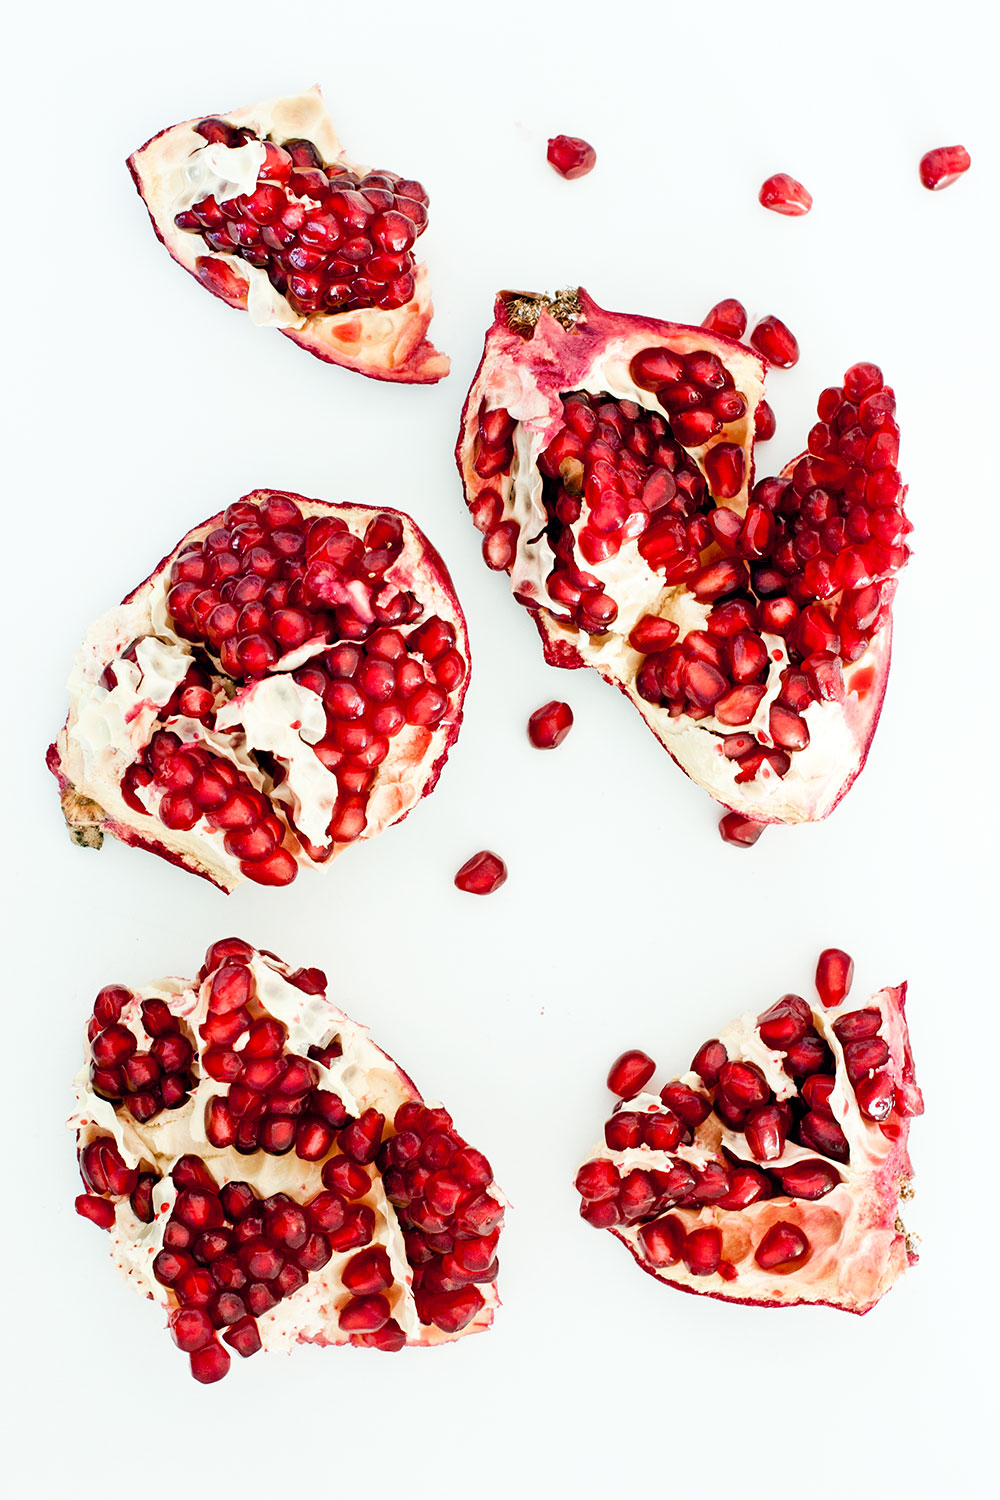 Pomegranate Jam 2